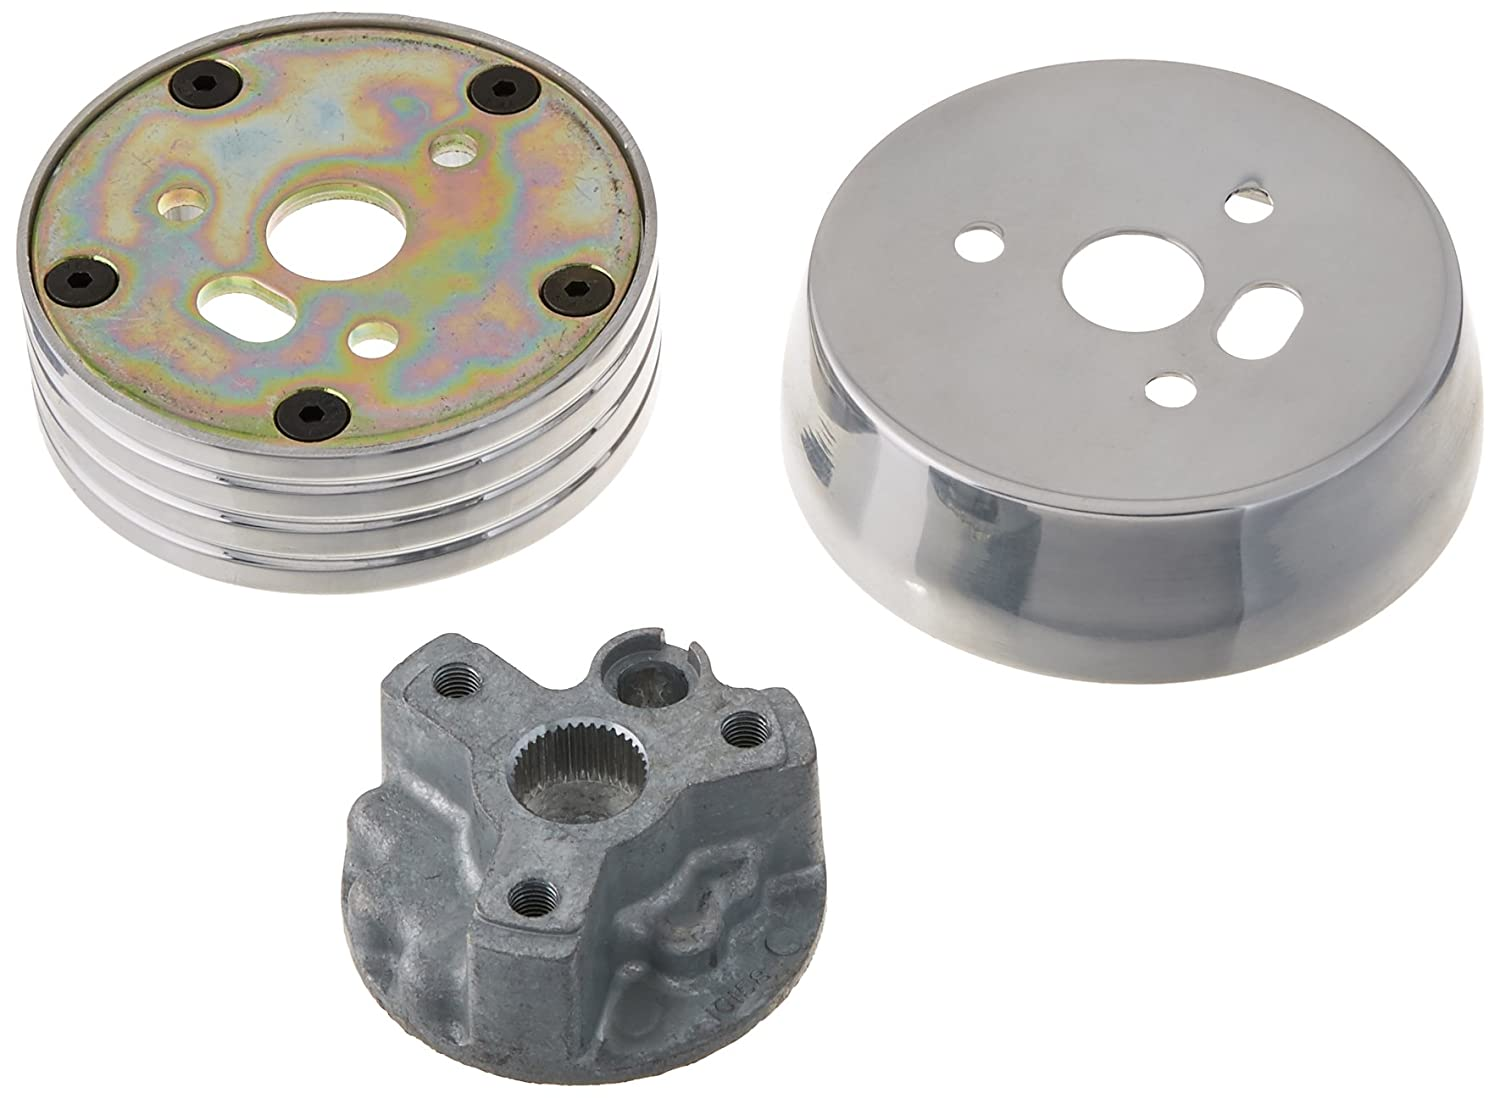 Grant Products 5162-1 Billet Installation Kit